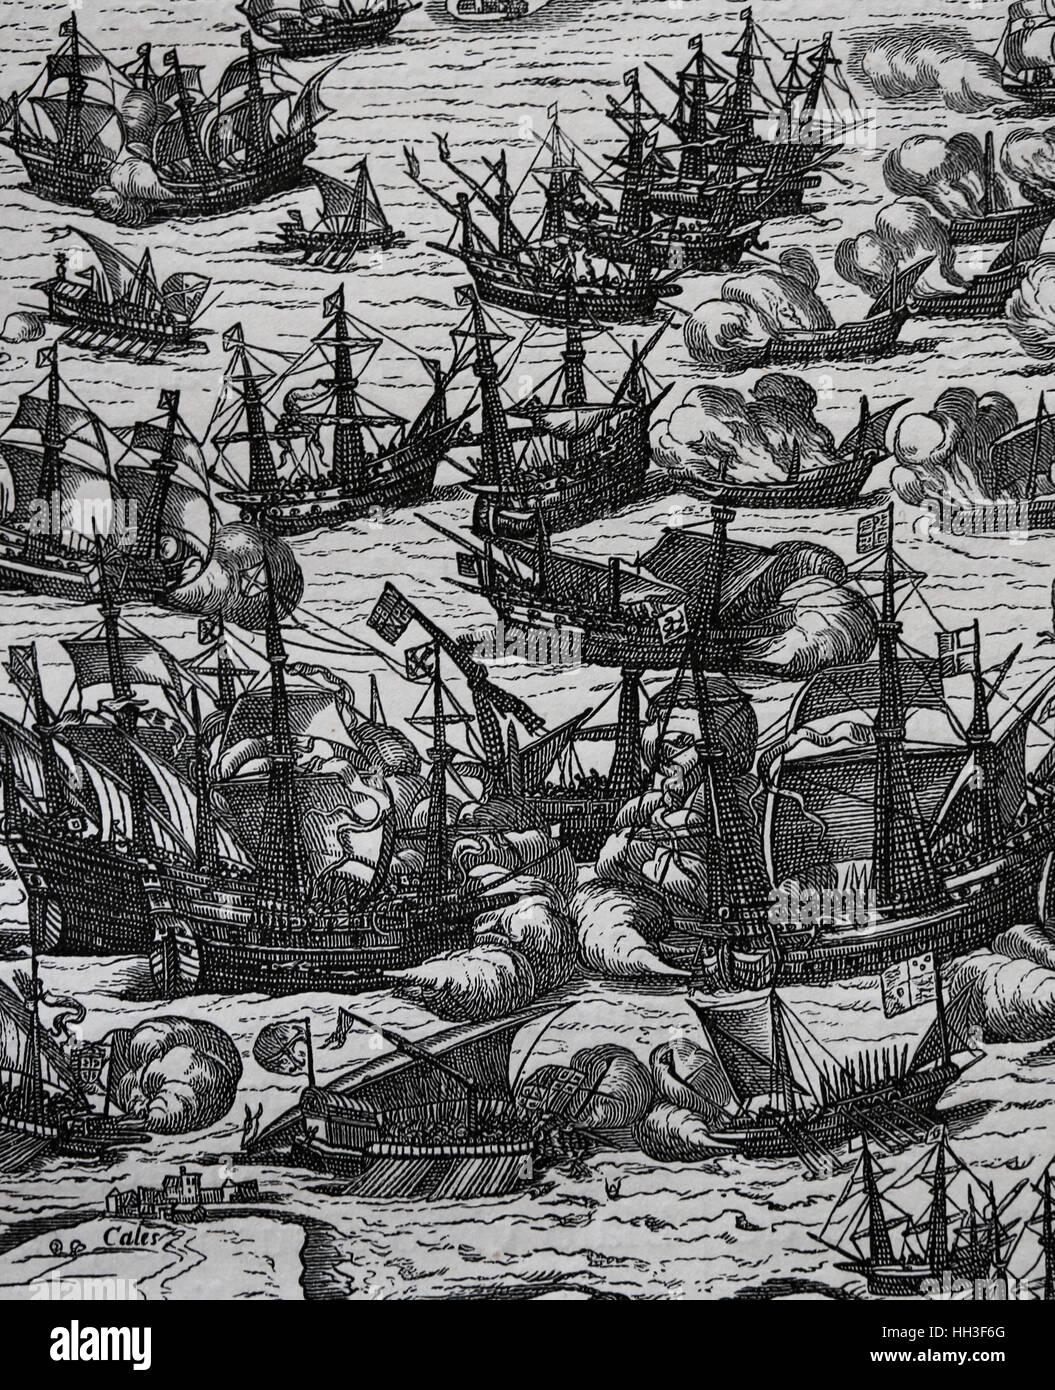 Spanish Armada. Spanish fleet of 130 ships with the purpose of invaded England. Engraving copy of an original of - Stock Image